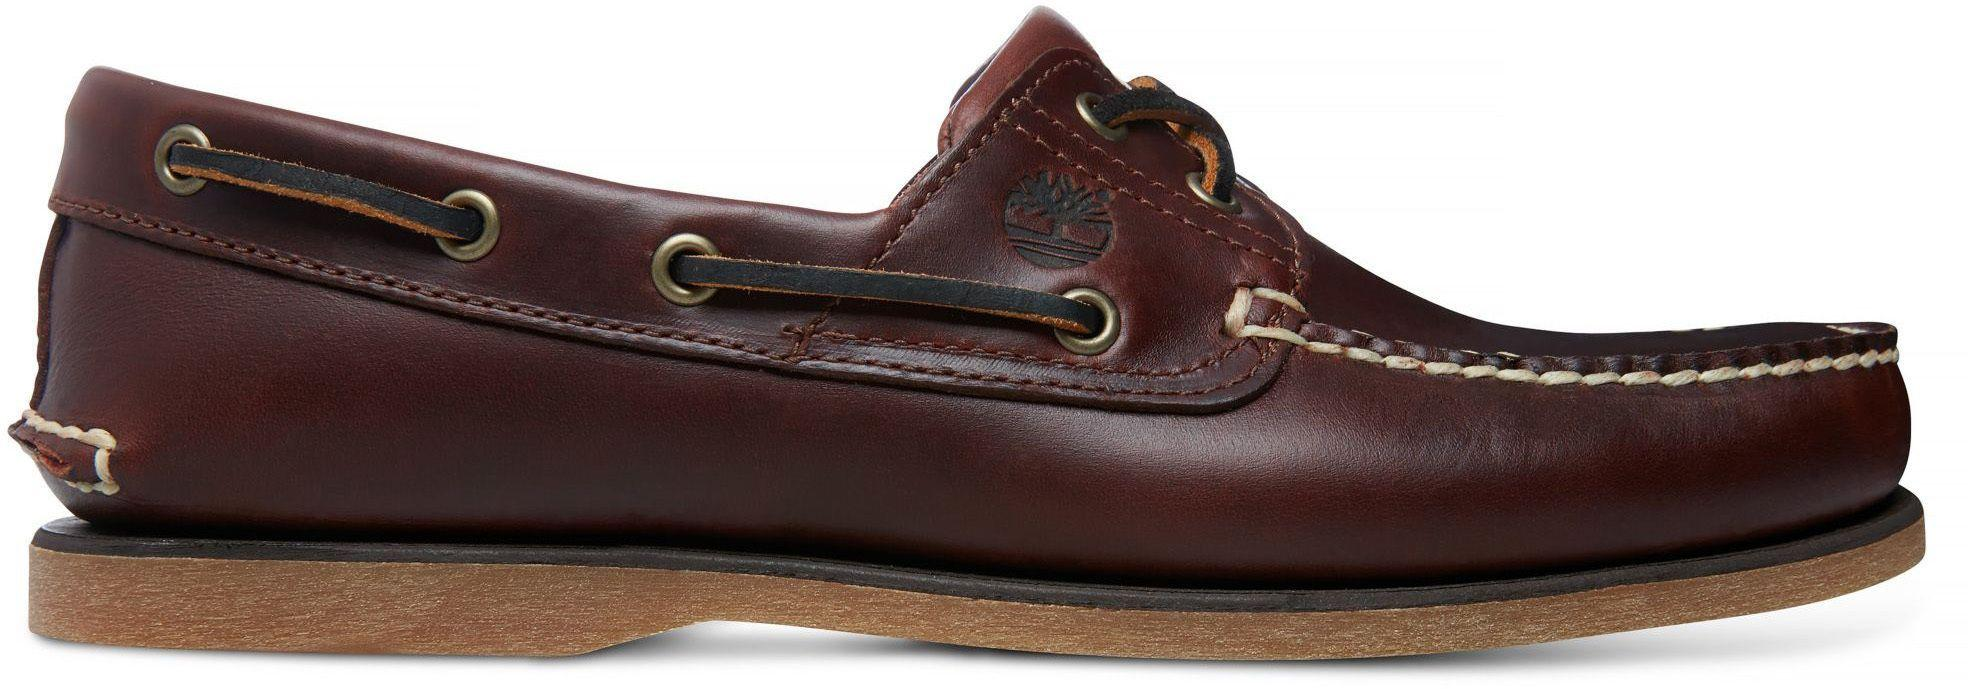 754534605 Timberland Classic 2-eye Boat Shoes Brown in Brown for Men - Lyst